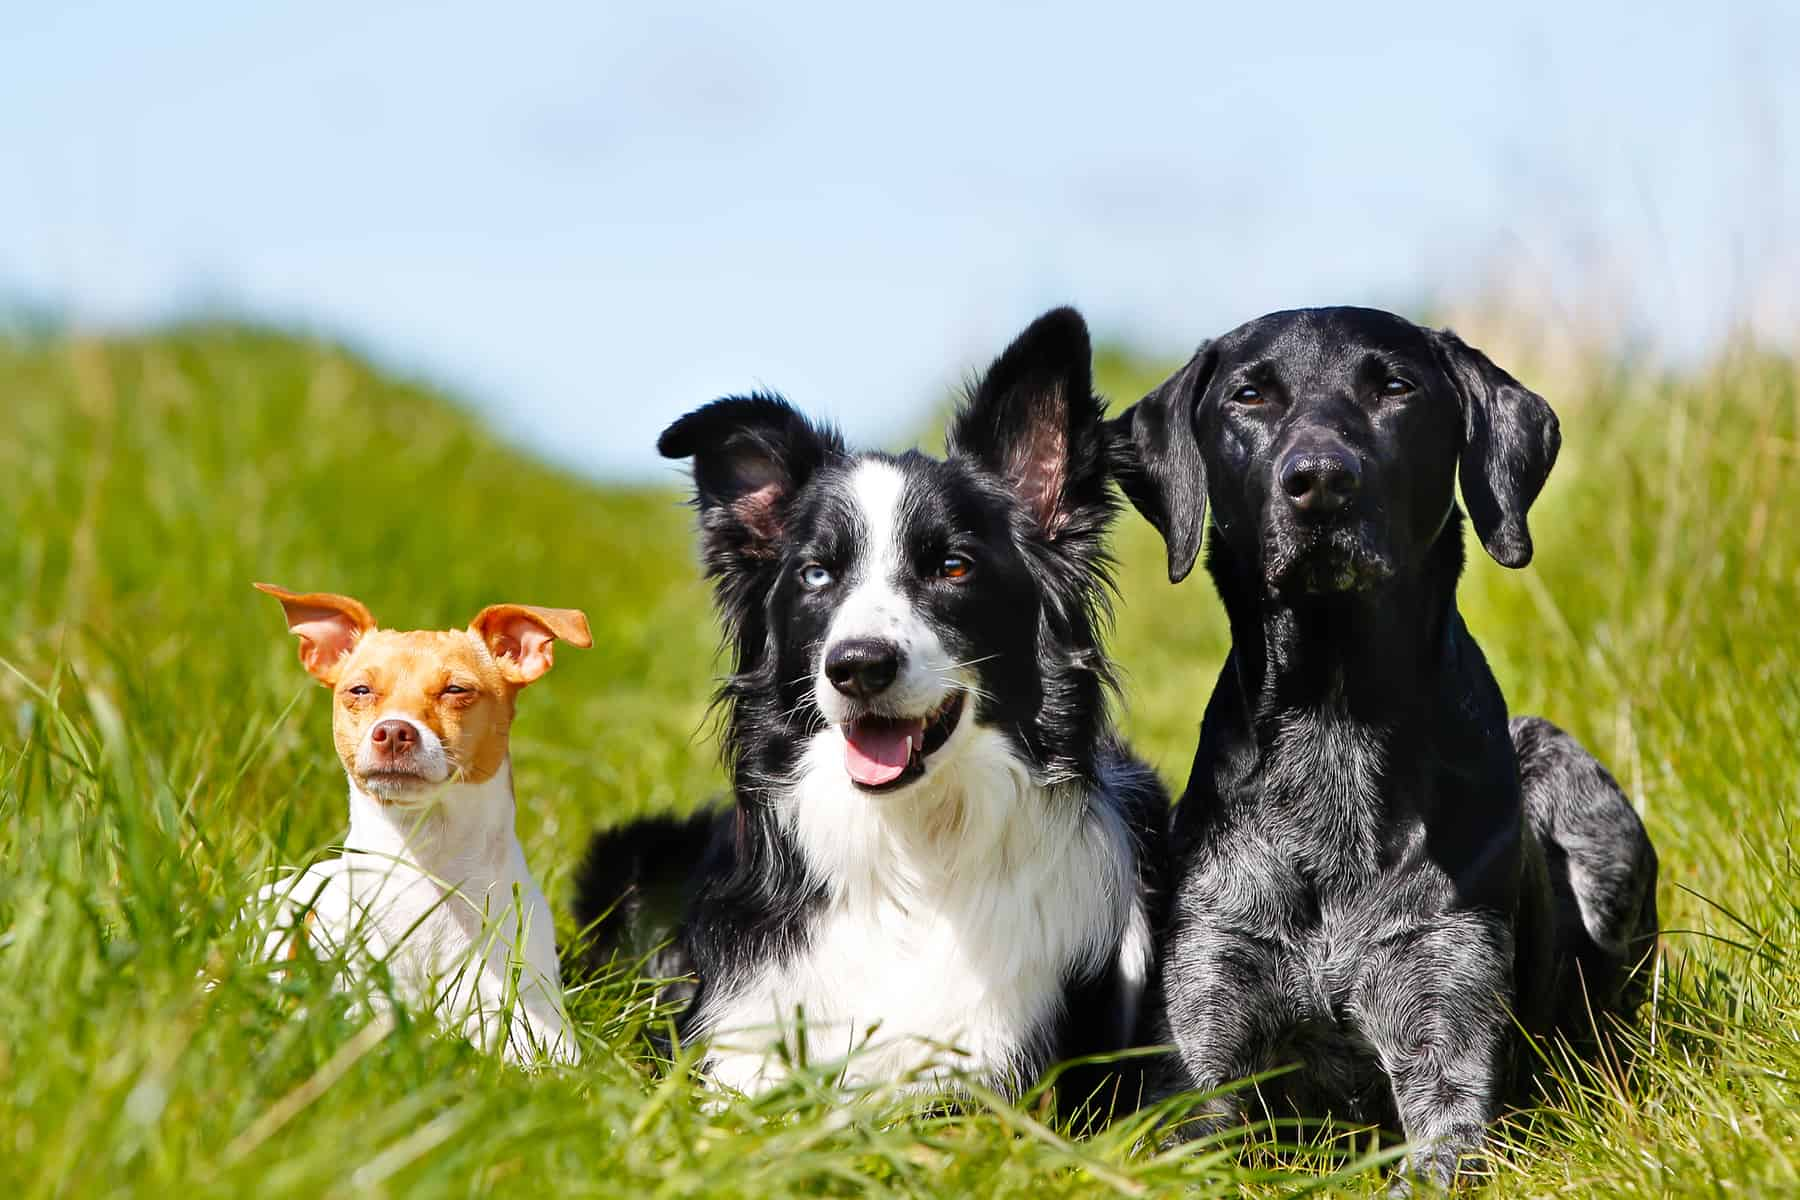 A Border Collie and 2 other dogs